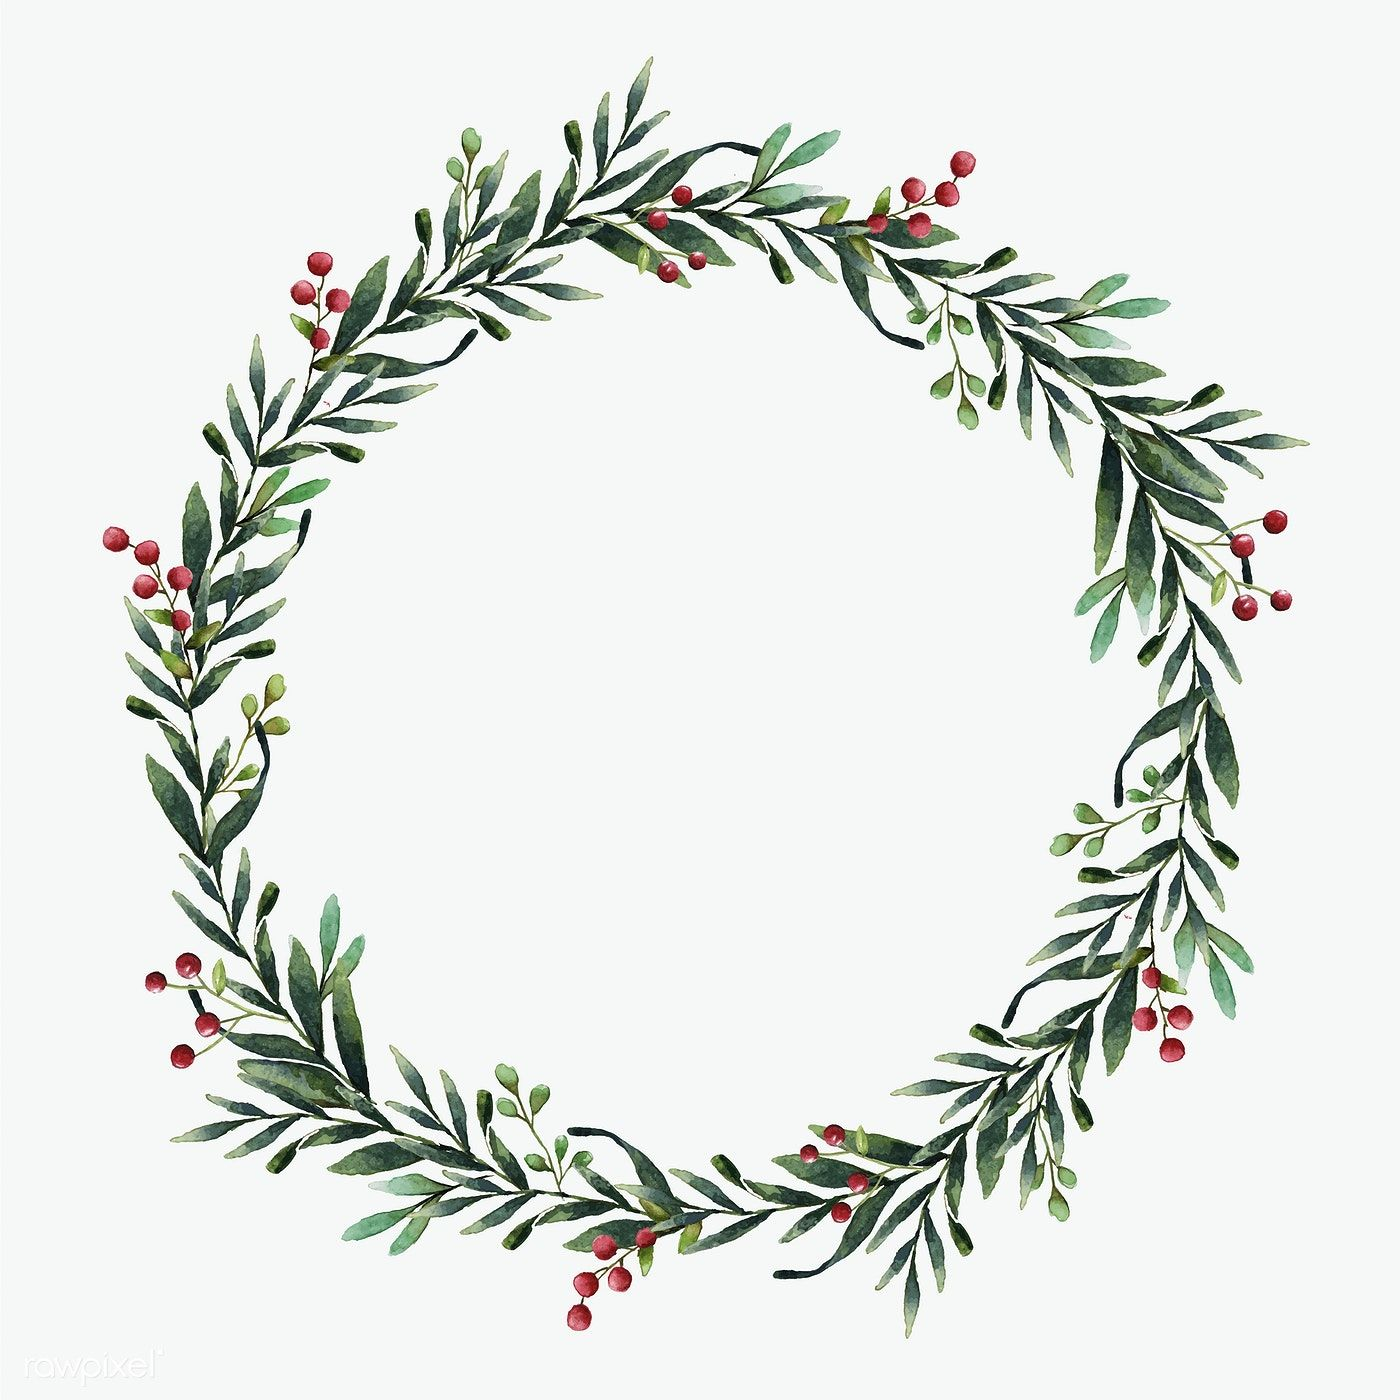 Download Premium Vector Of Round Christmas Wreath Vector Watercolor Style Christmas Wreath Illustration Christmas Wreath Clipart Christmas Watercolor